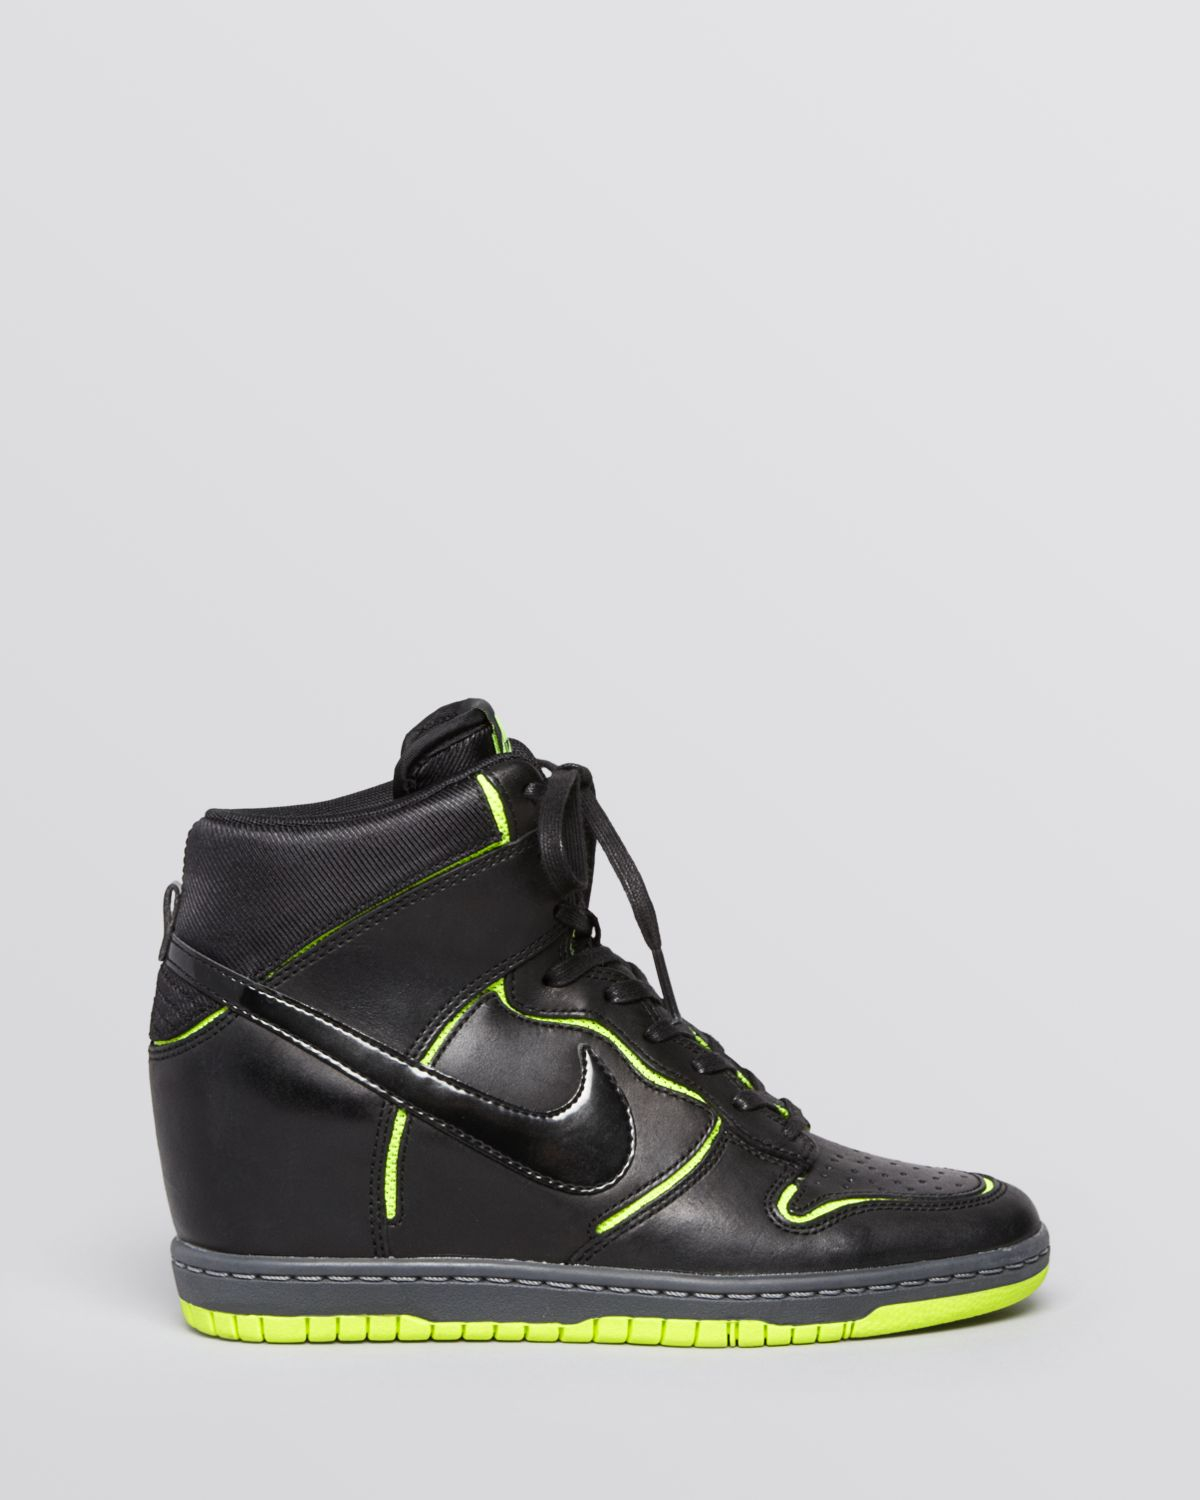 Nike Shoes For Women High Tops Black And White